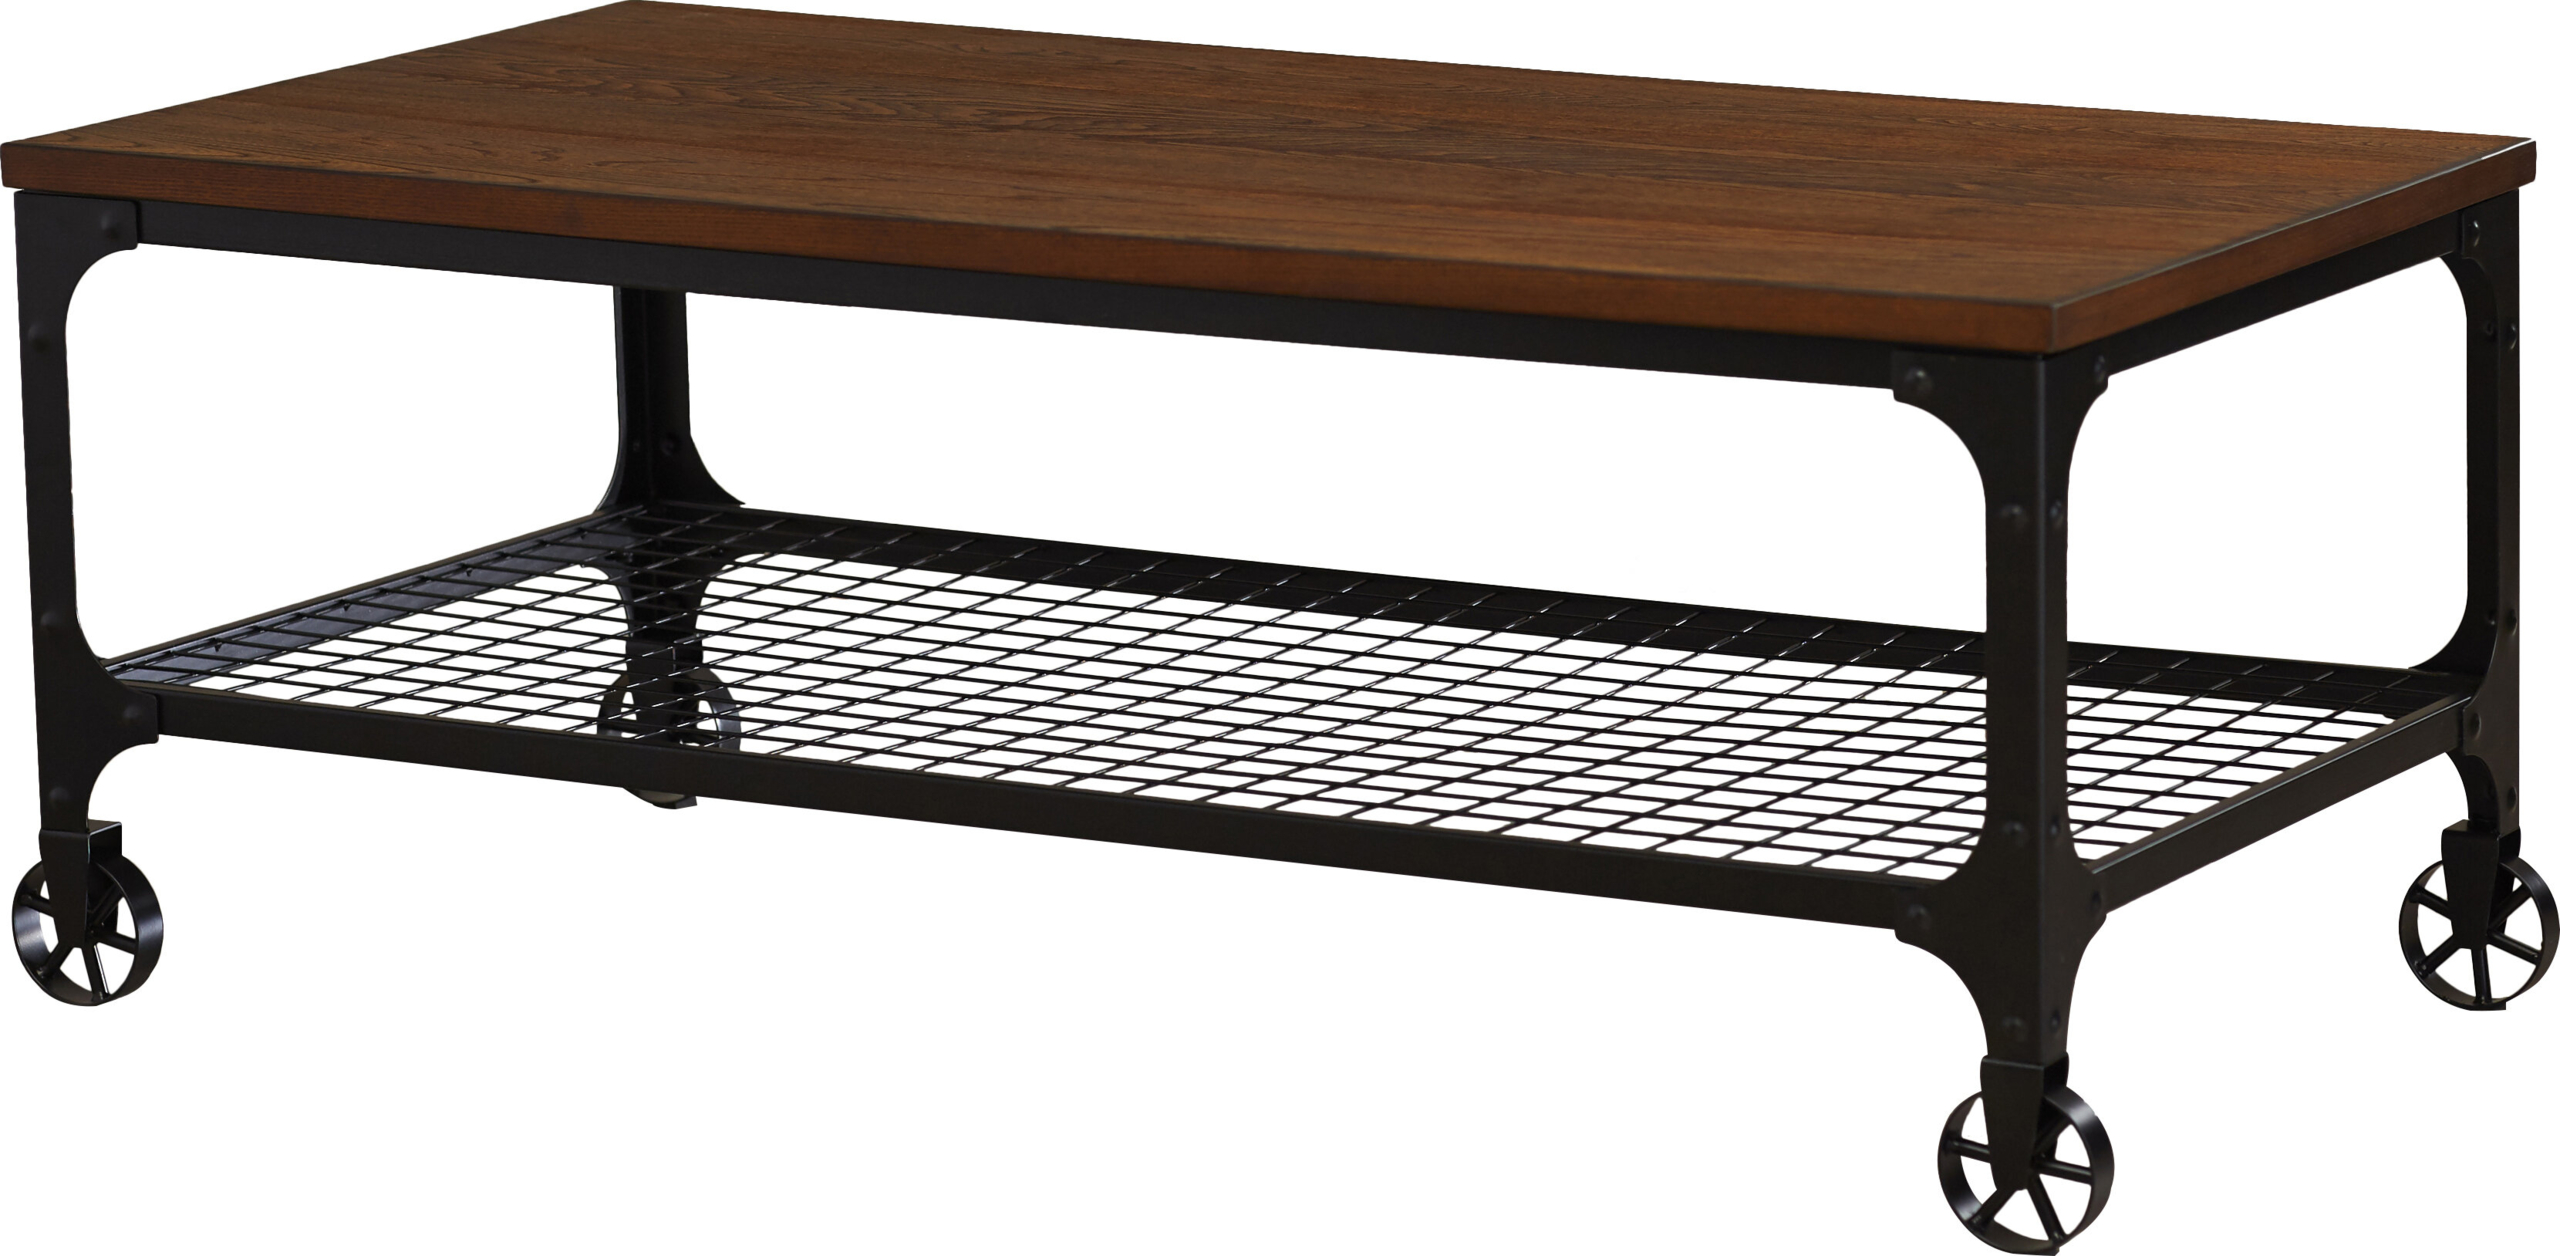 Wrought iron coffee table visual hunt